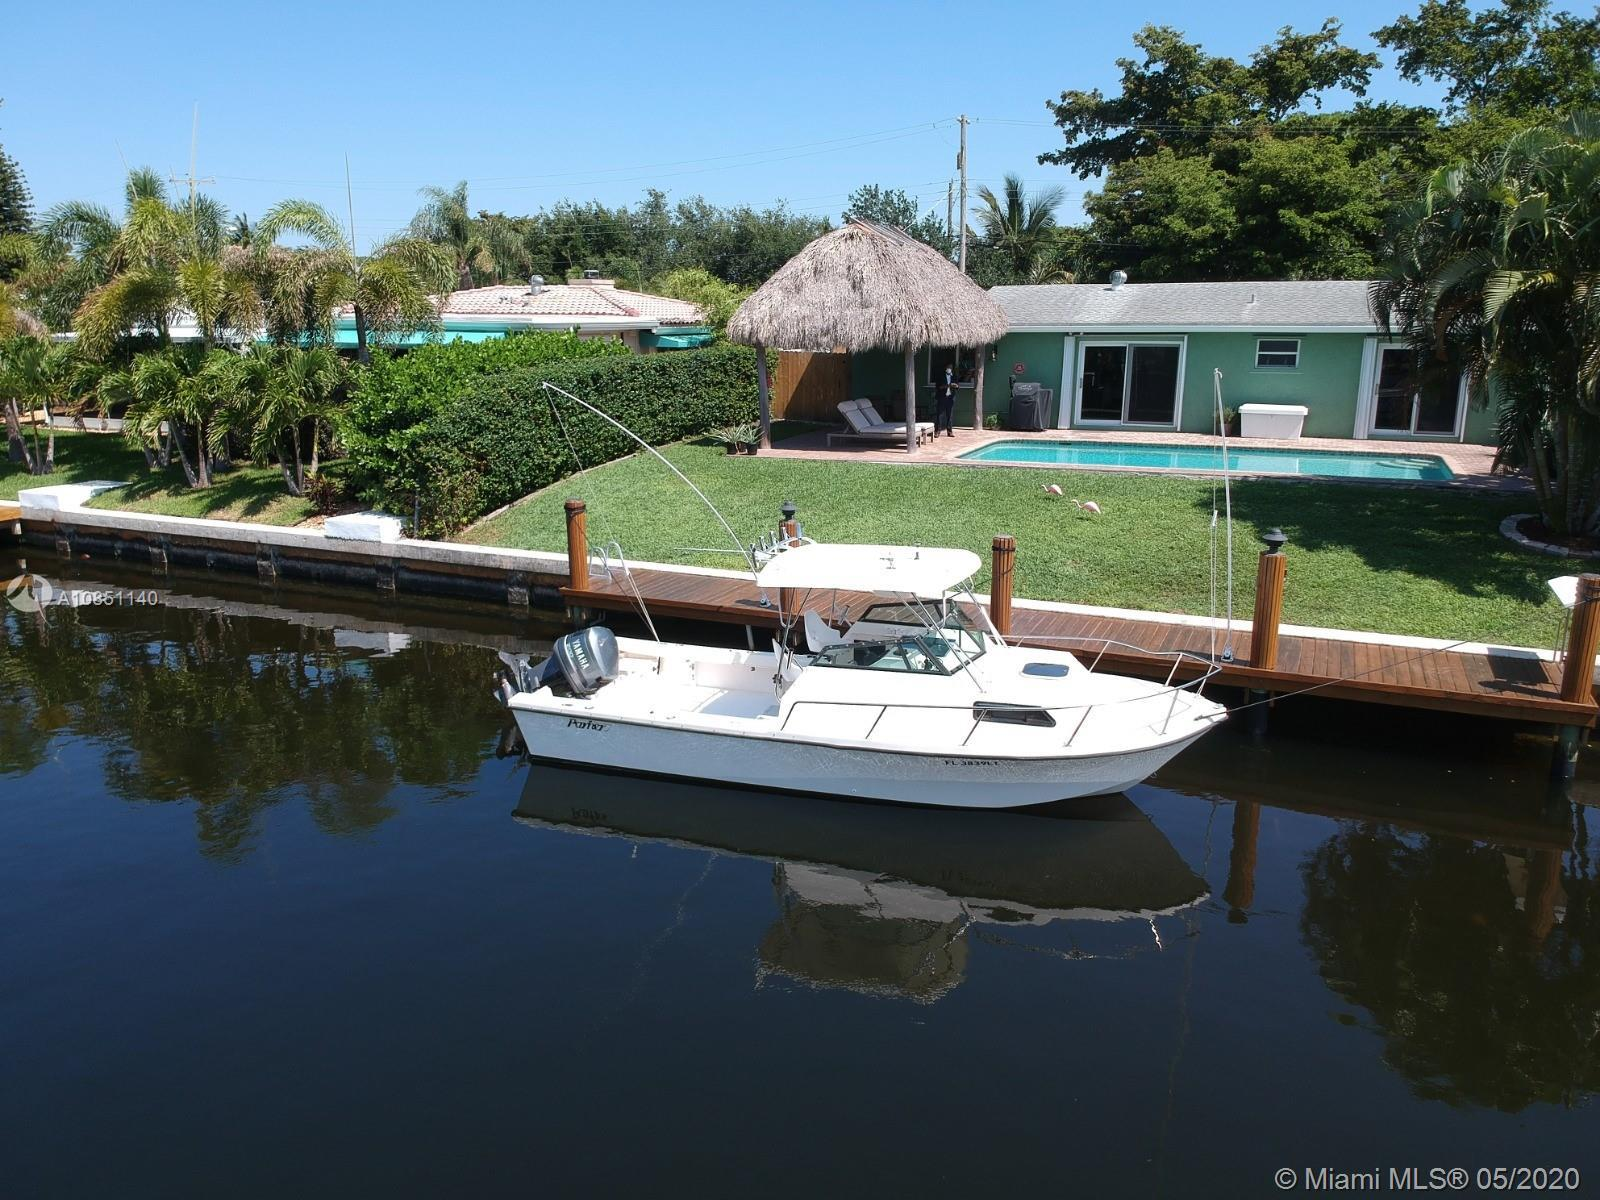 Boaters dream home! Perfectly priced with breathtaking water views and your own luxury dock for fish